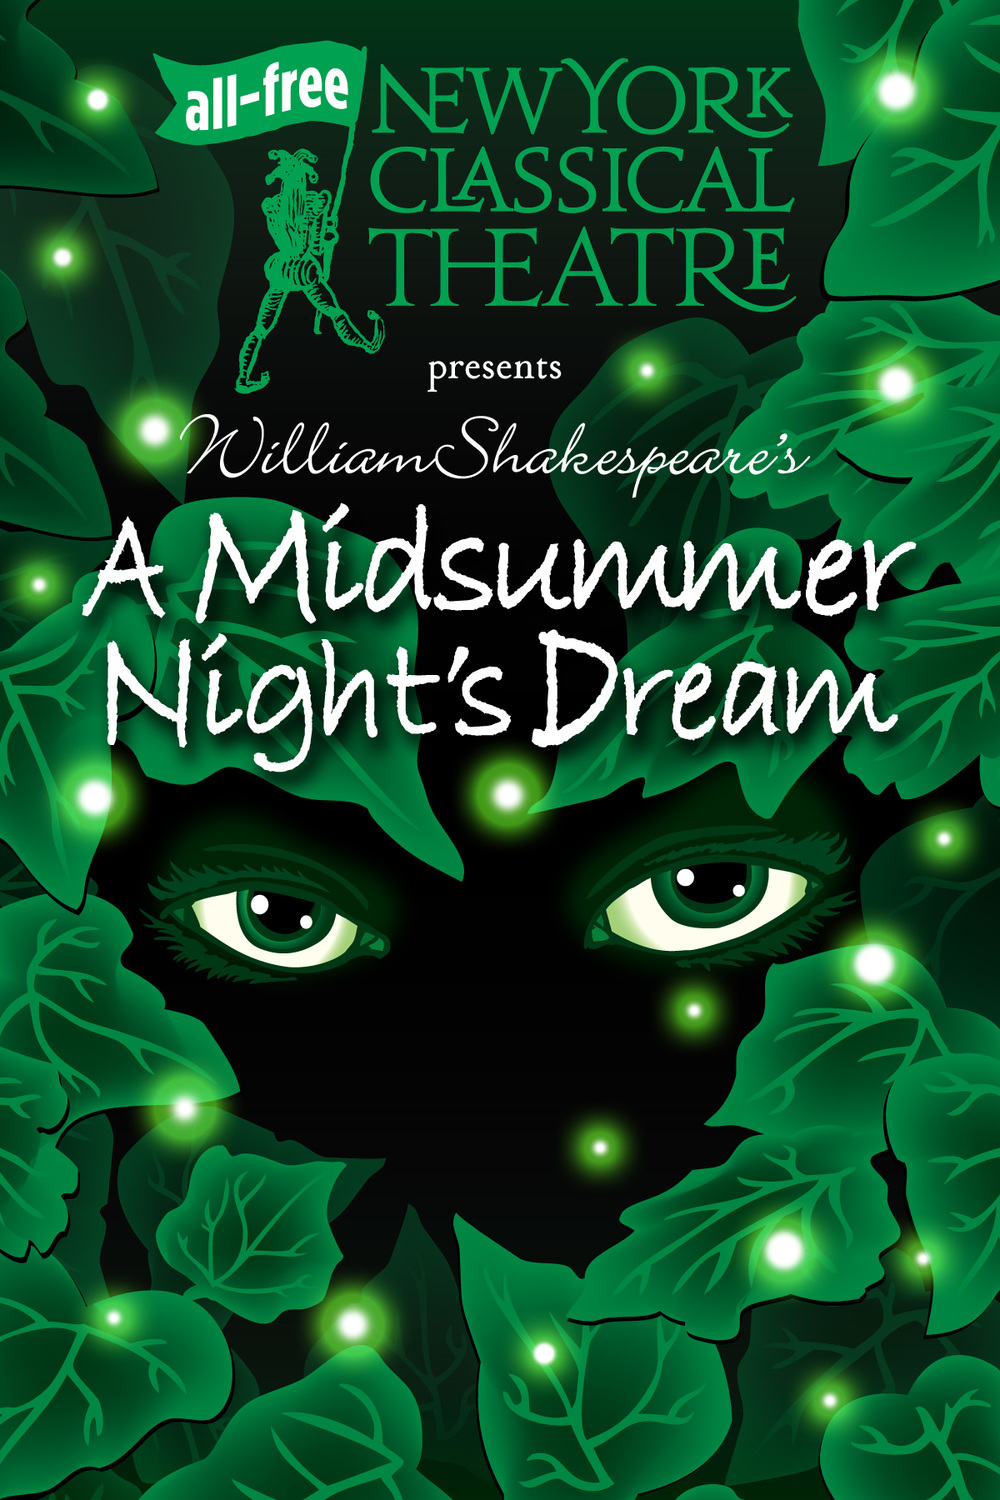 Performs May 31-July 17 First up is A Midsummer Night's Dream.Last presented by New York Classical in 2000,Midsummertells the story of young love: all the passion and romance with a generous helping of hysterics and hijinks! Click HEREfor more details!